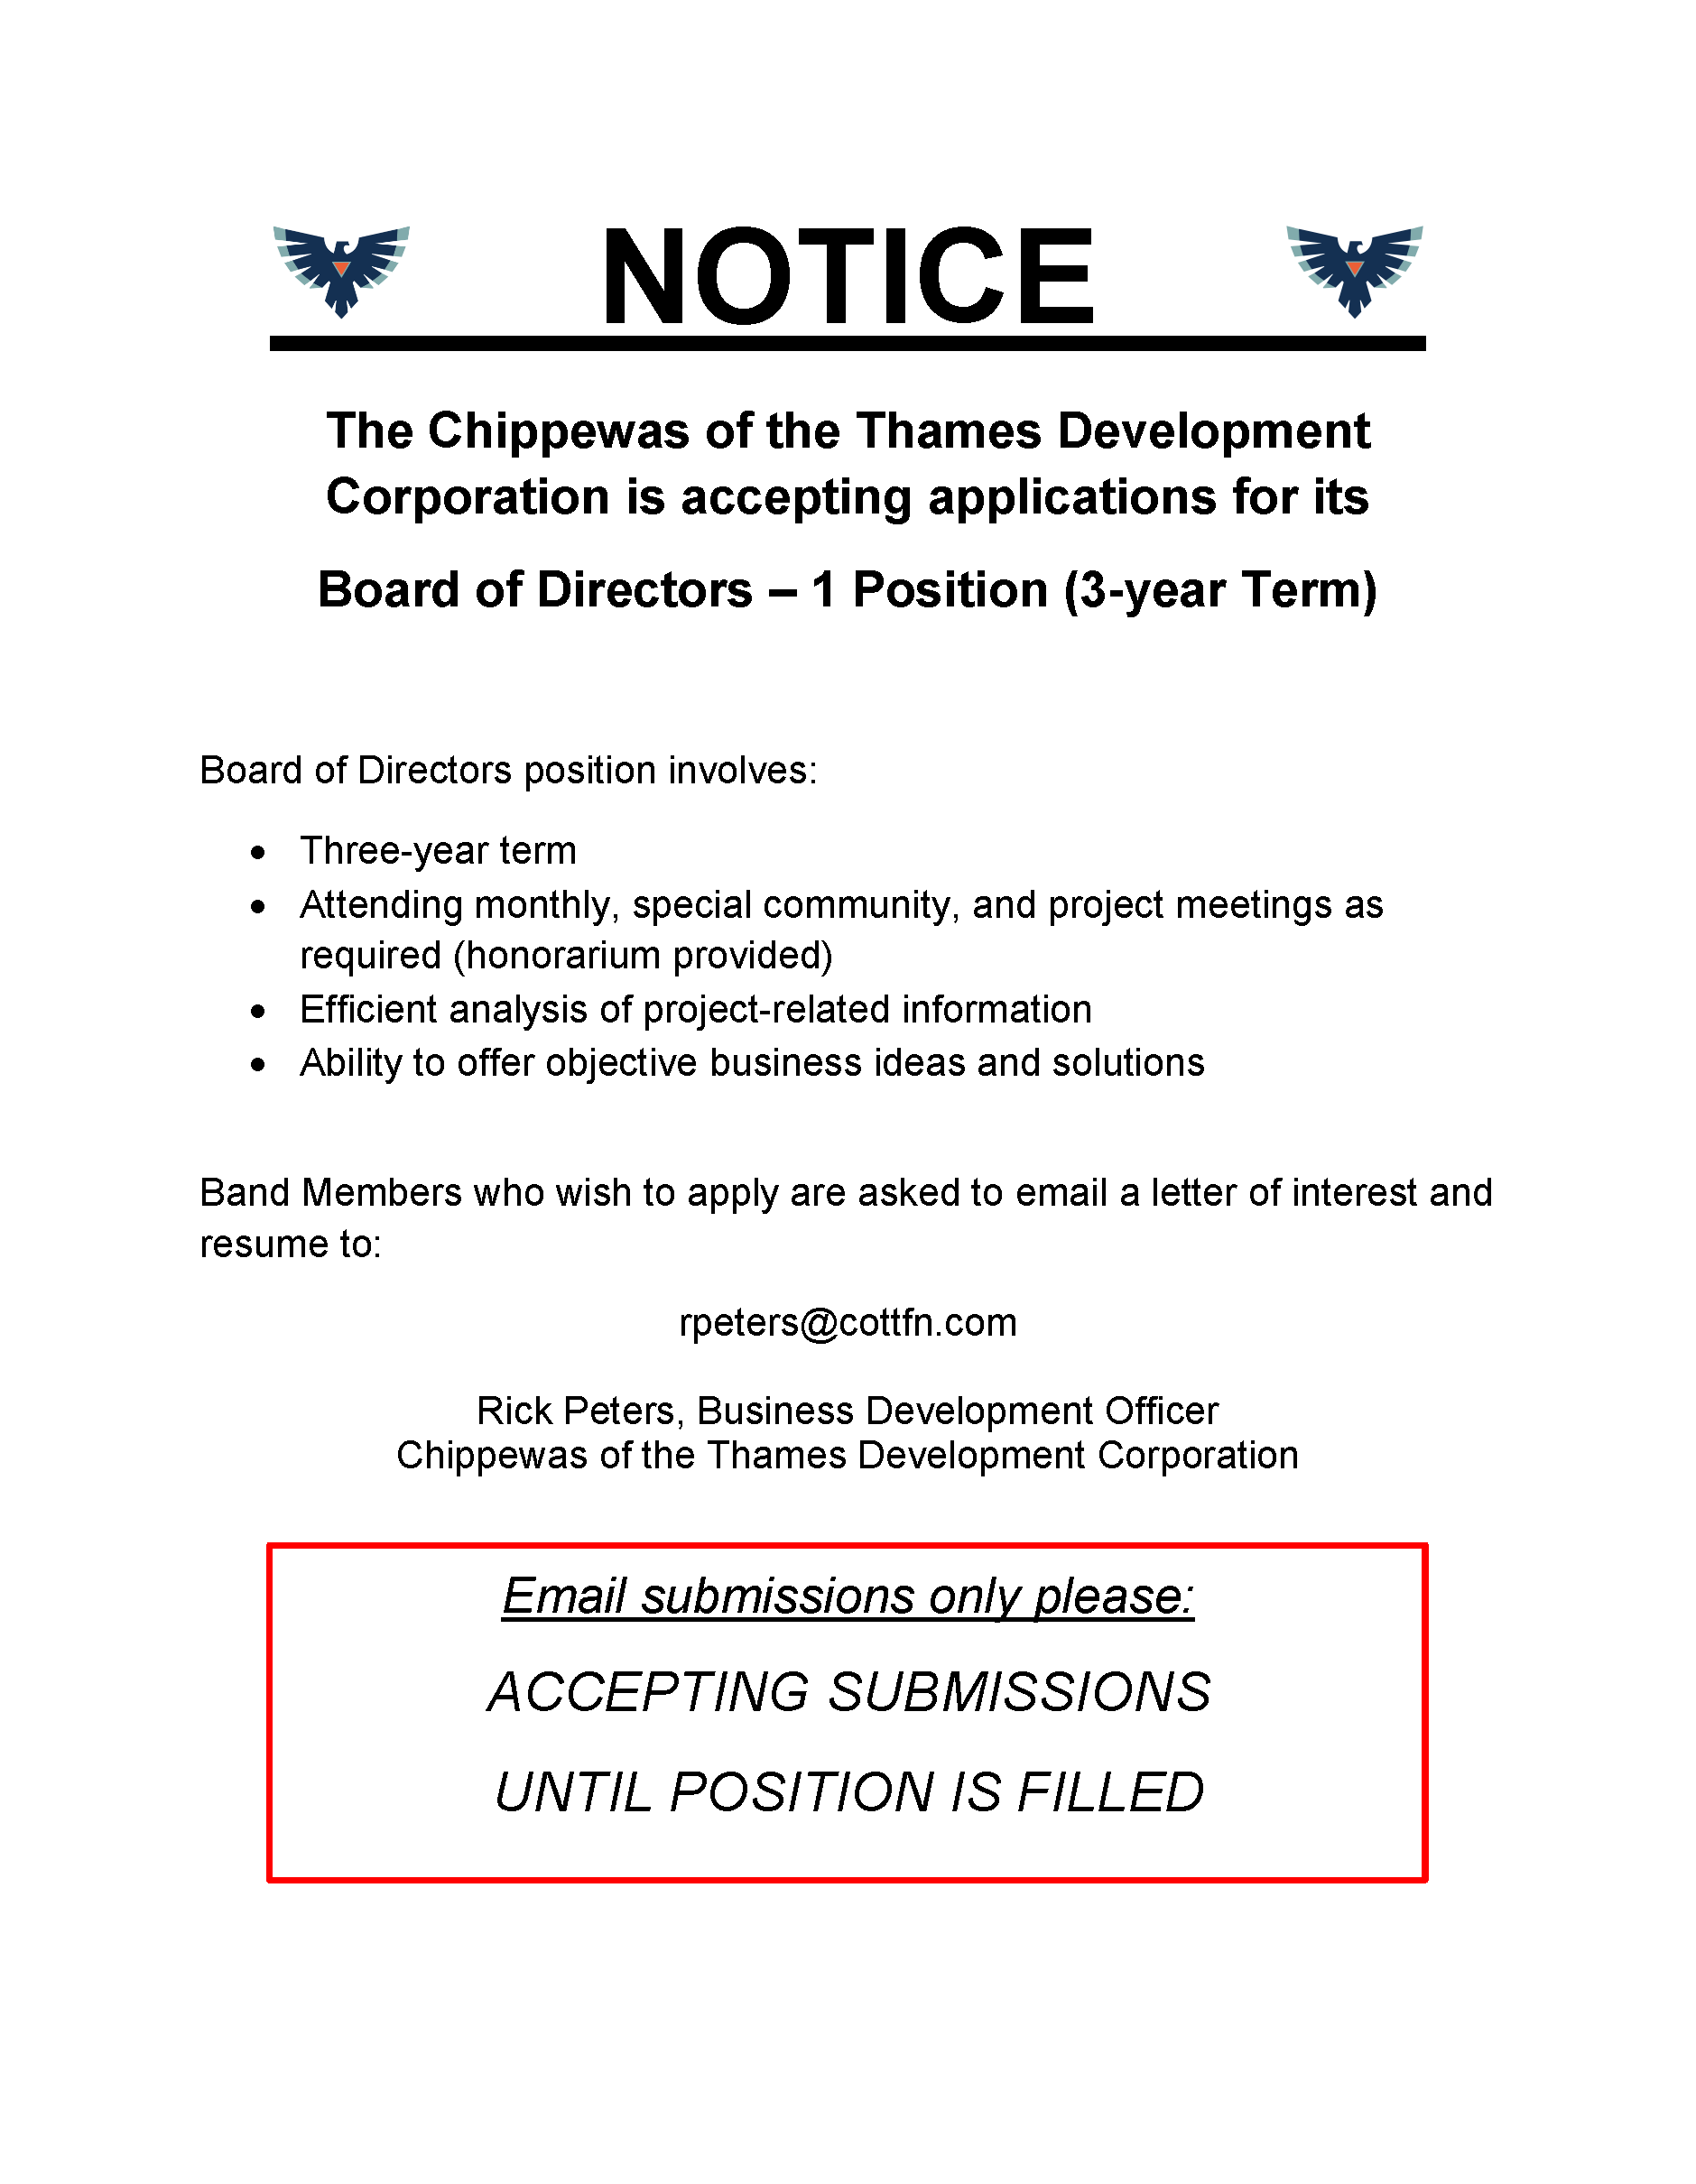 ctdc_board-of-directors_recruitment_april-2019_1-position